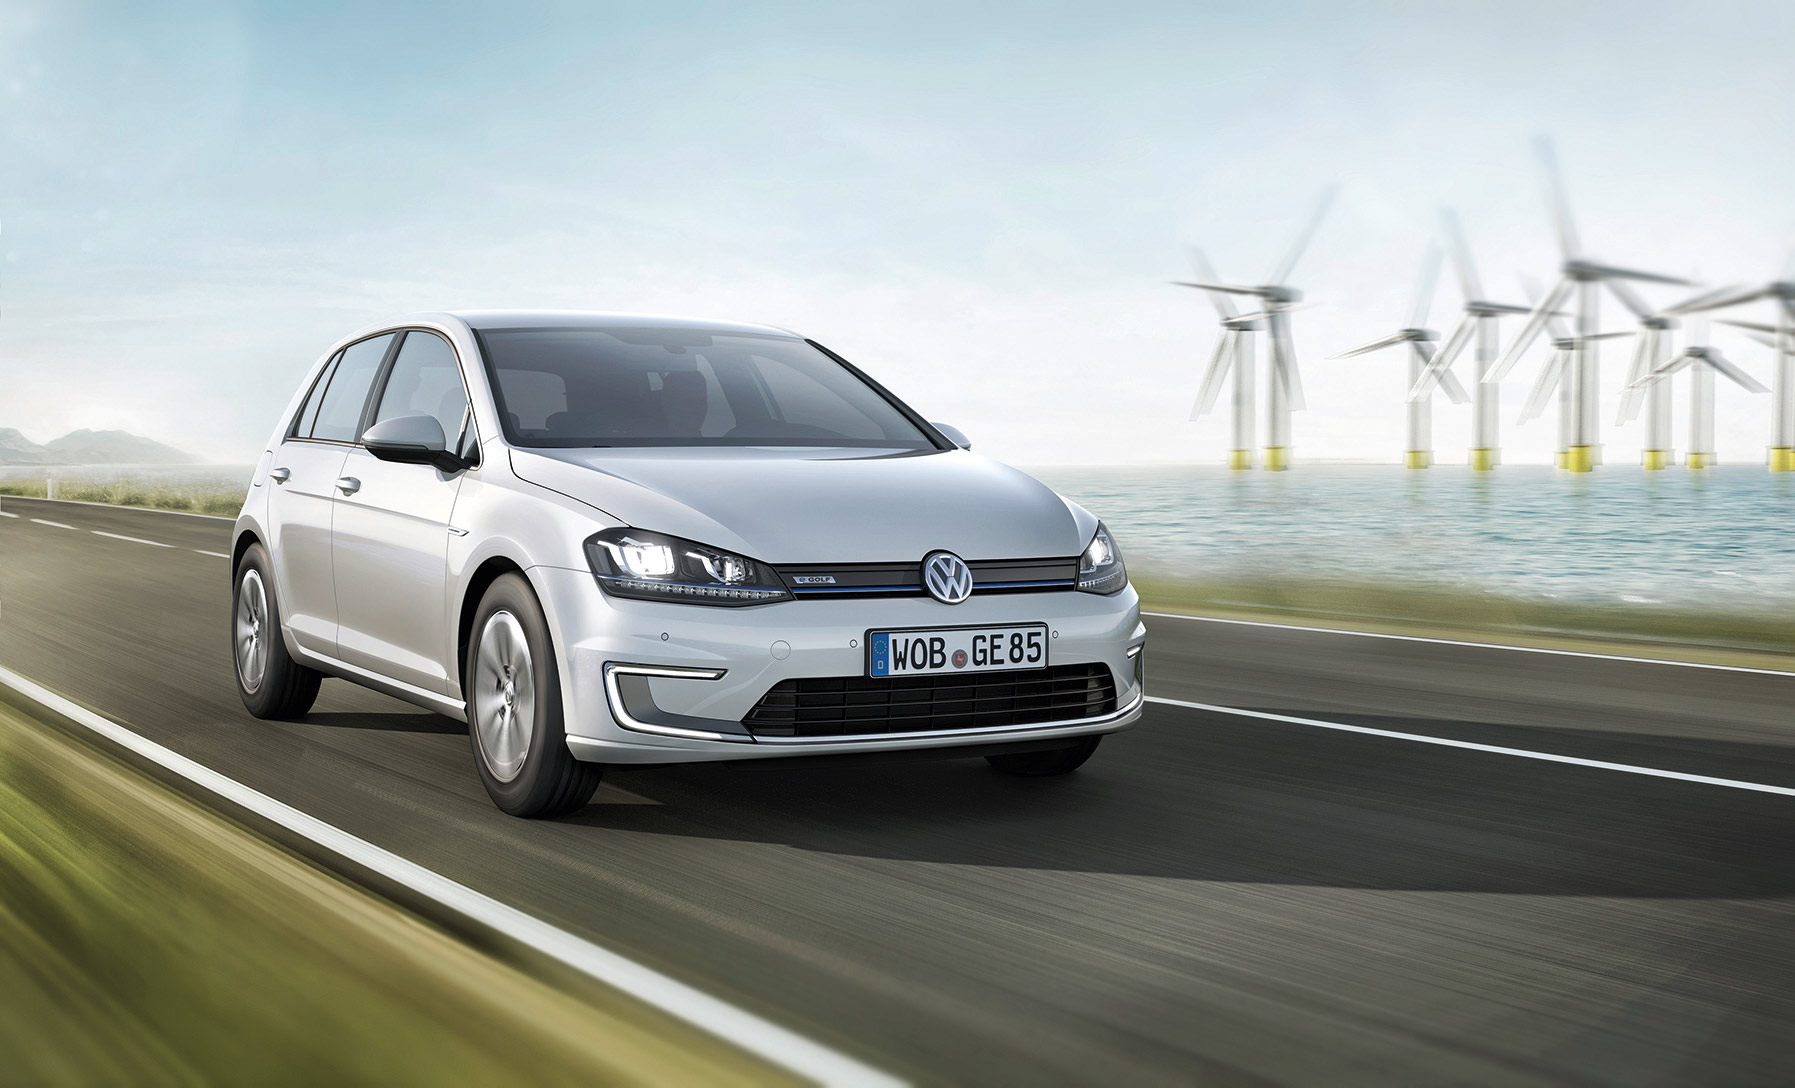 volkswagen-e-golf-002